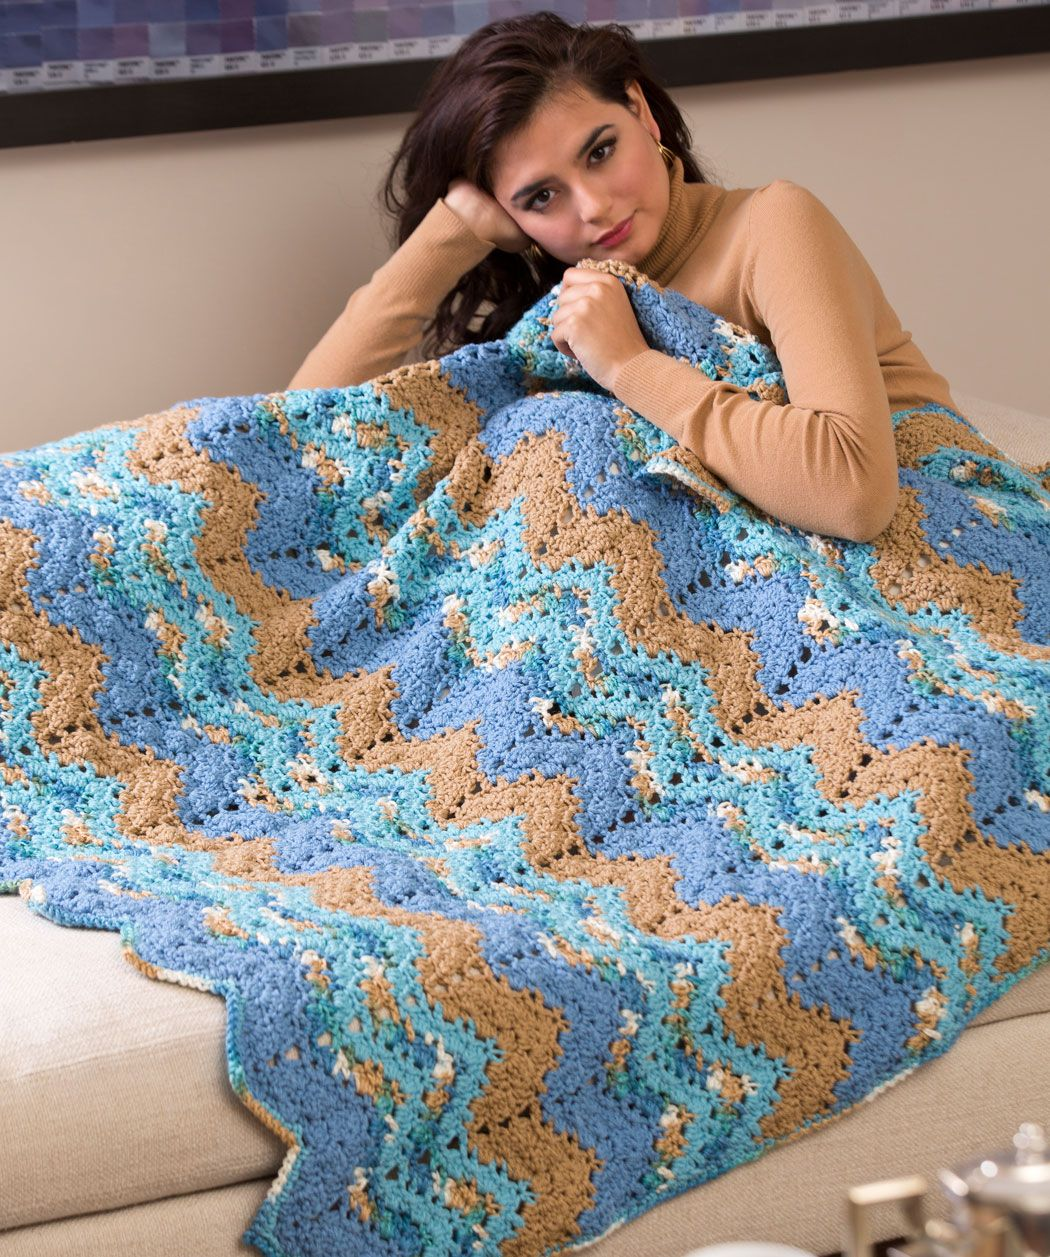 Rippling Waters Throw Free Crochet Pattern from Red Heart